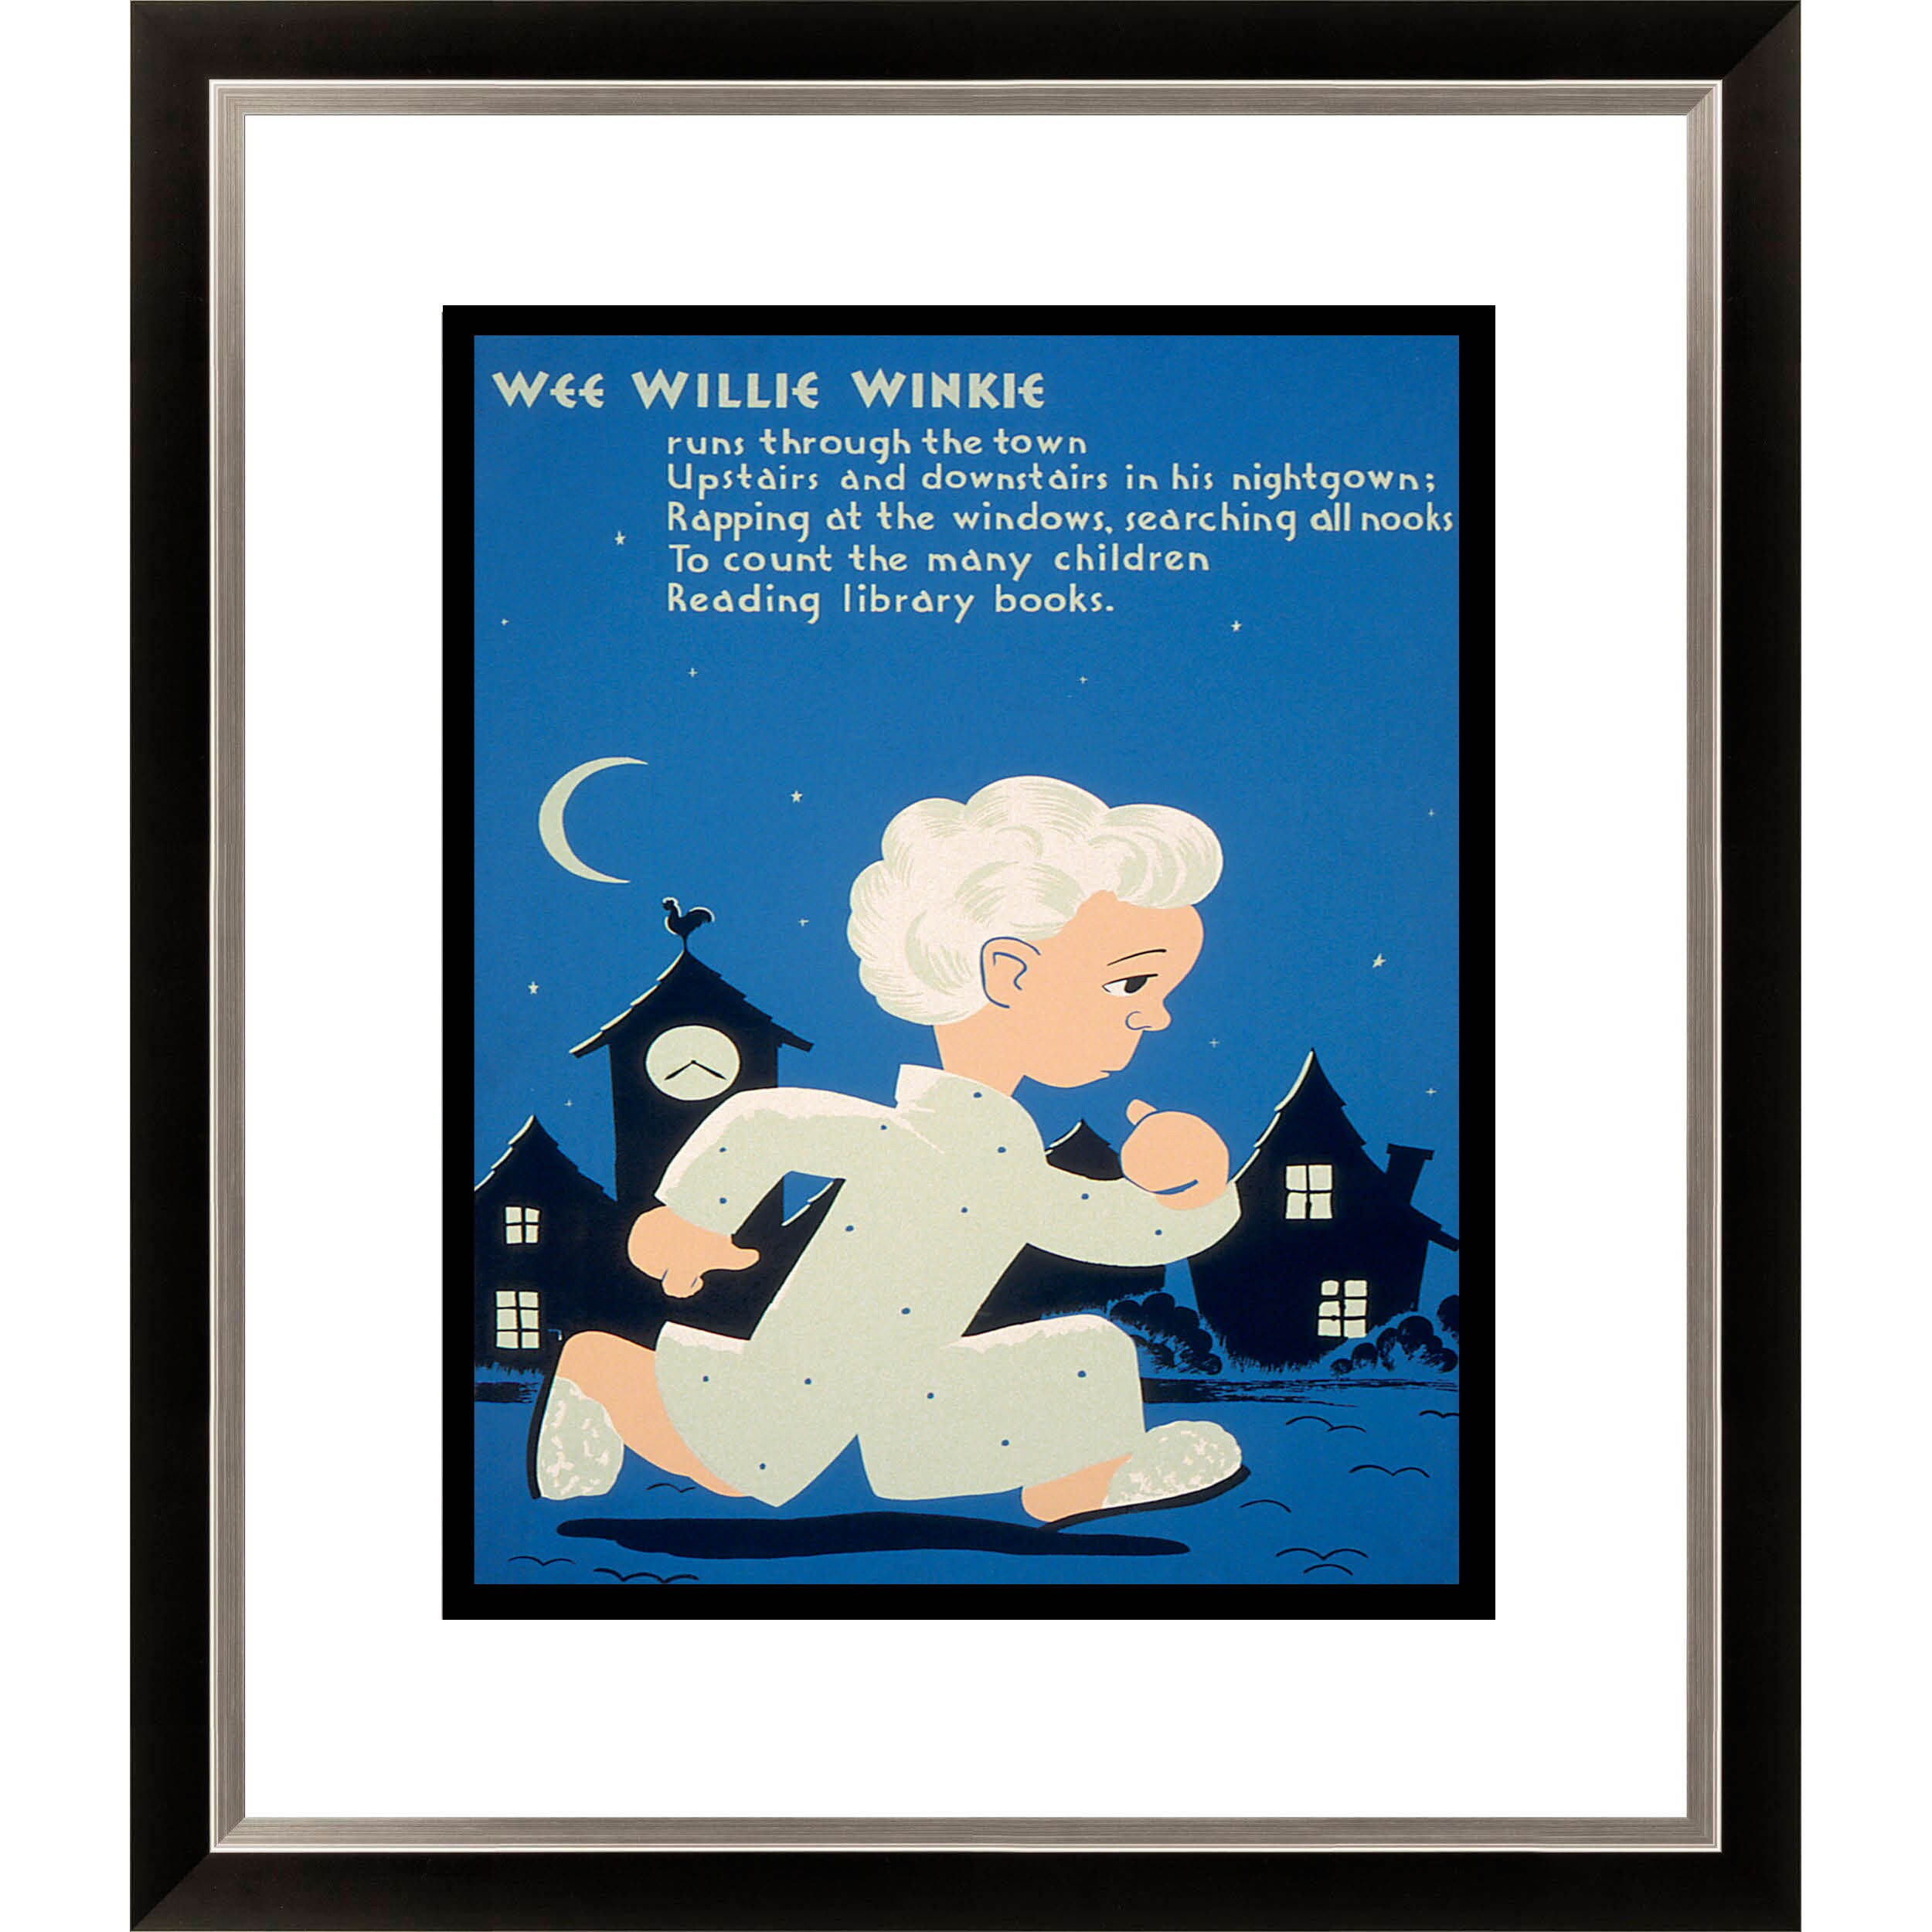 'Wee Willie Winkie Runs Through the Town' Framed Limited Edition Giclee